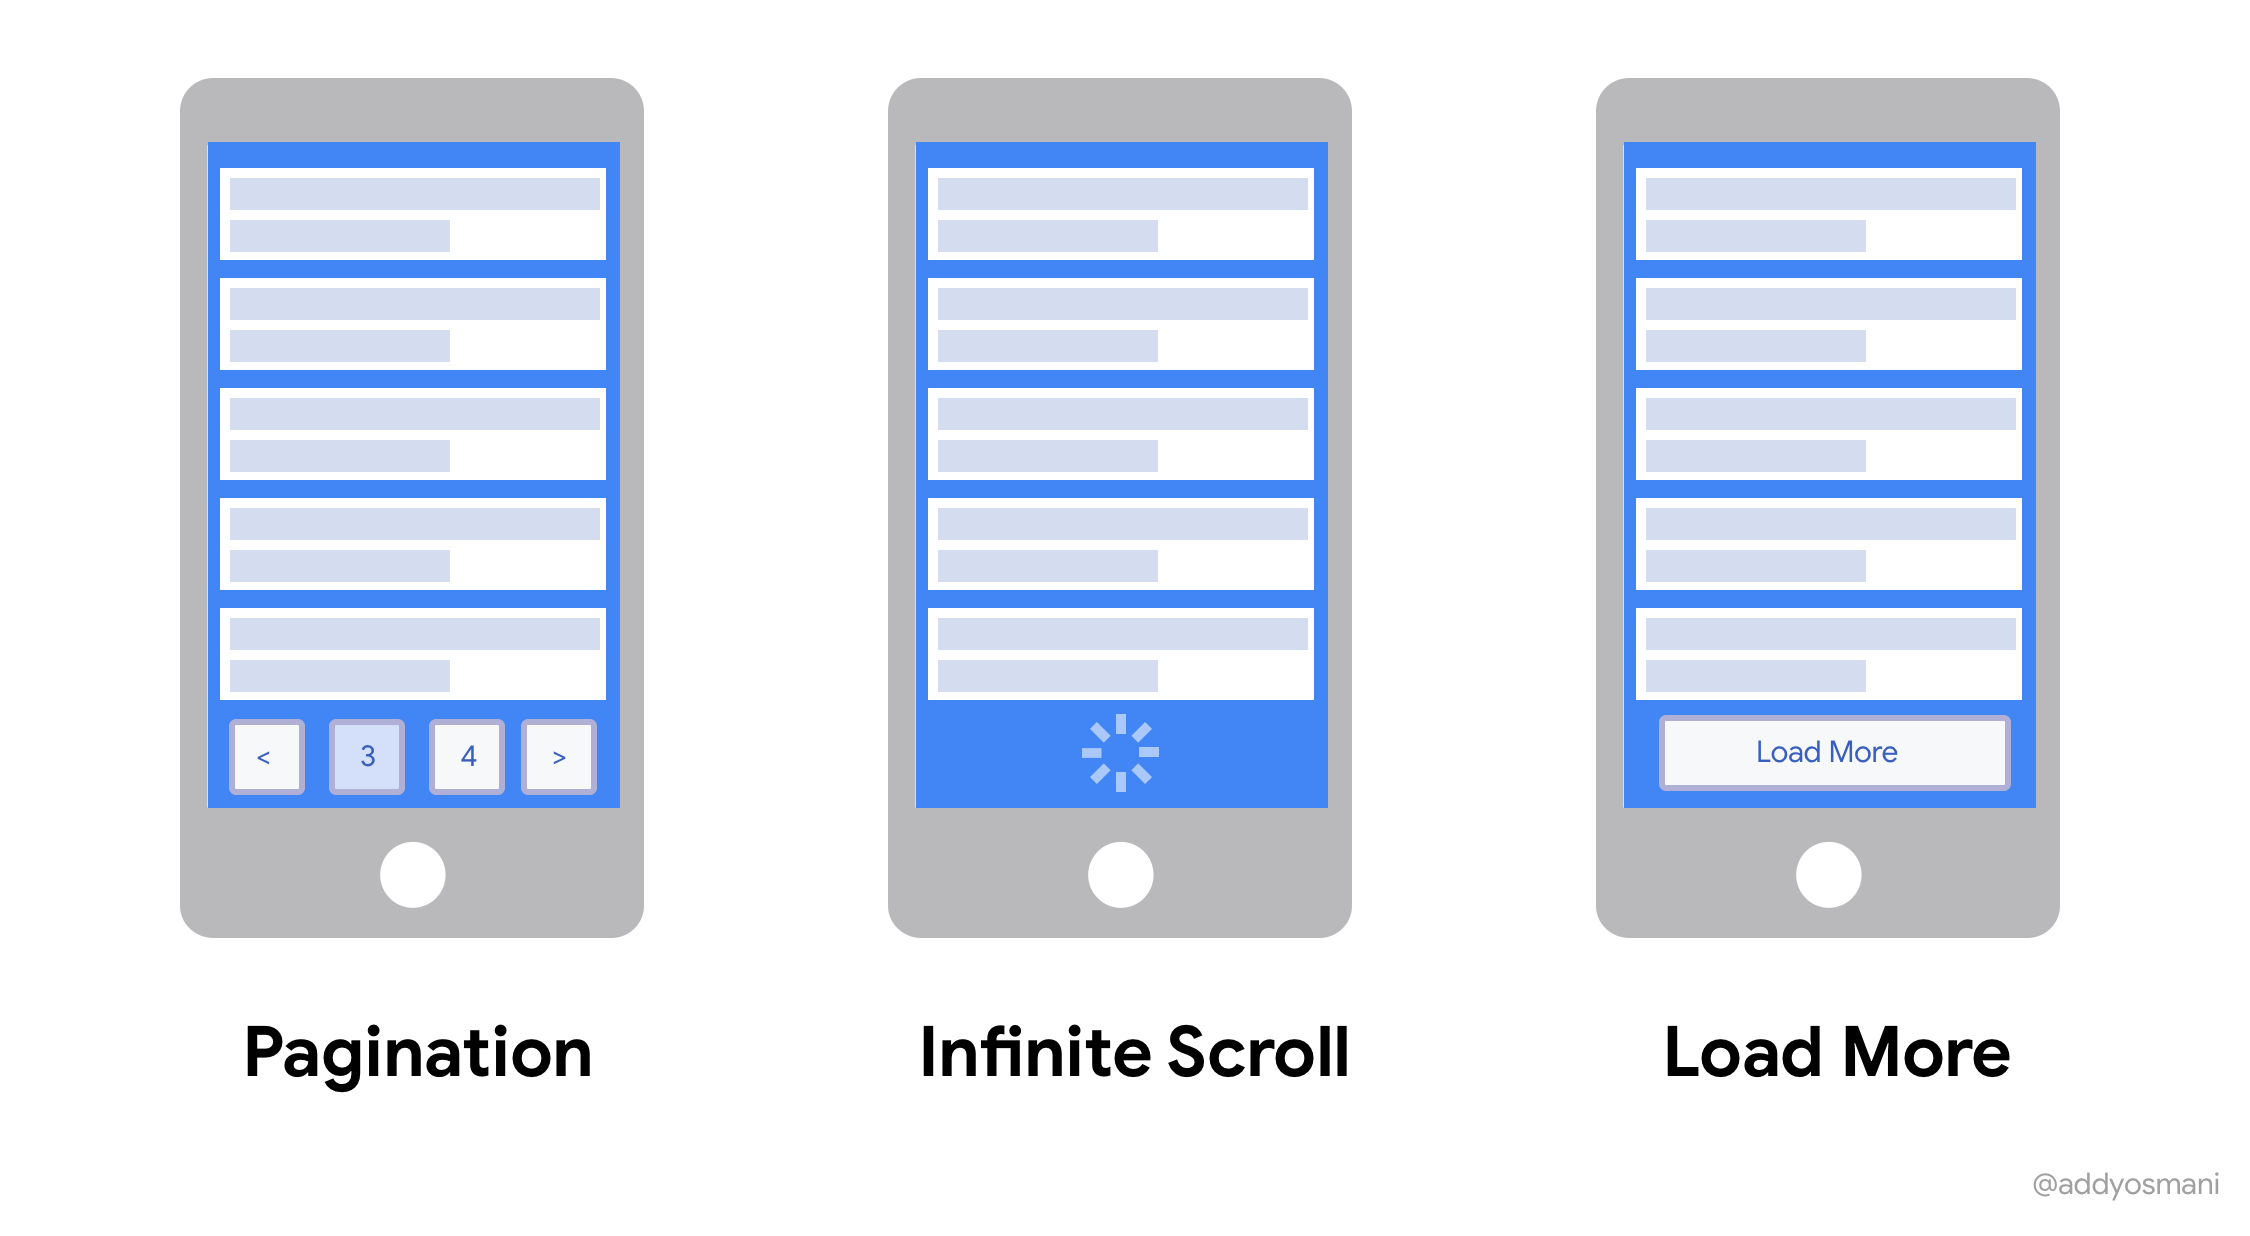 A comparison of infinite scroll vs. pagination vs load more